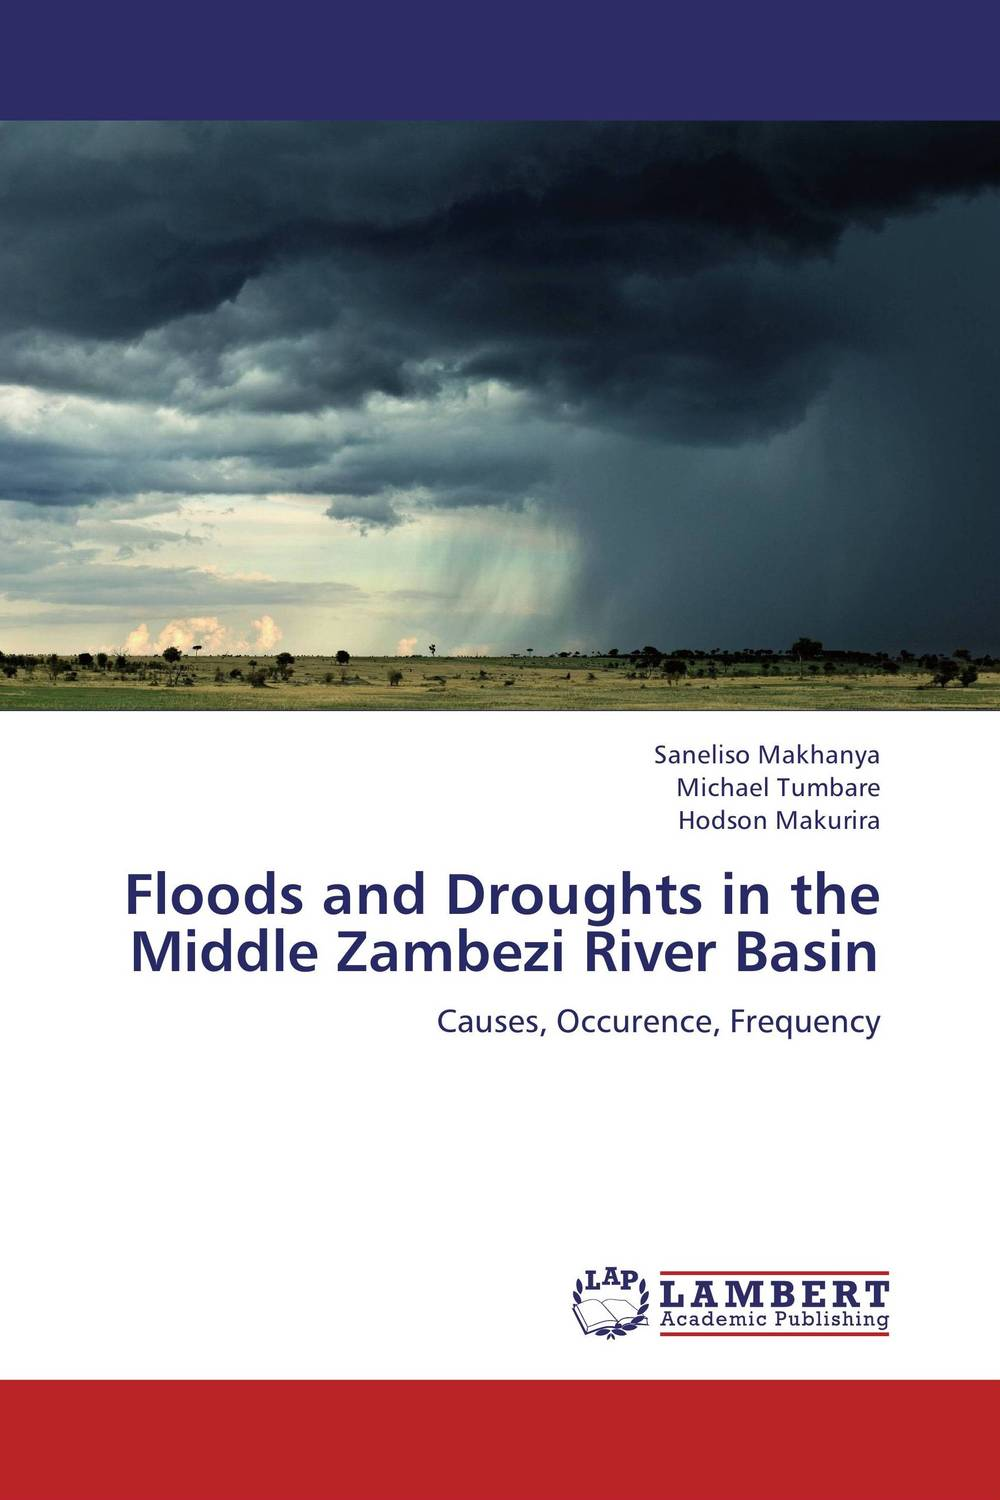 Floods and Droughts in the Middle Zambezi River Basin local practices in coping with floods and droughts at basin scale